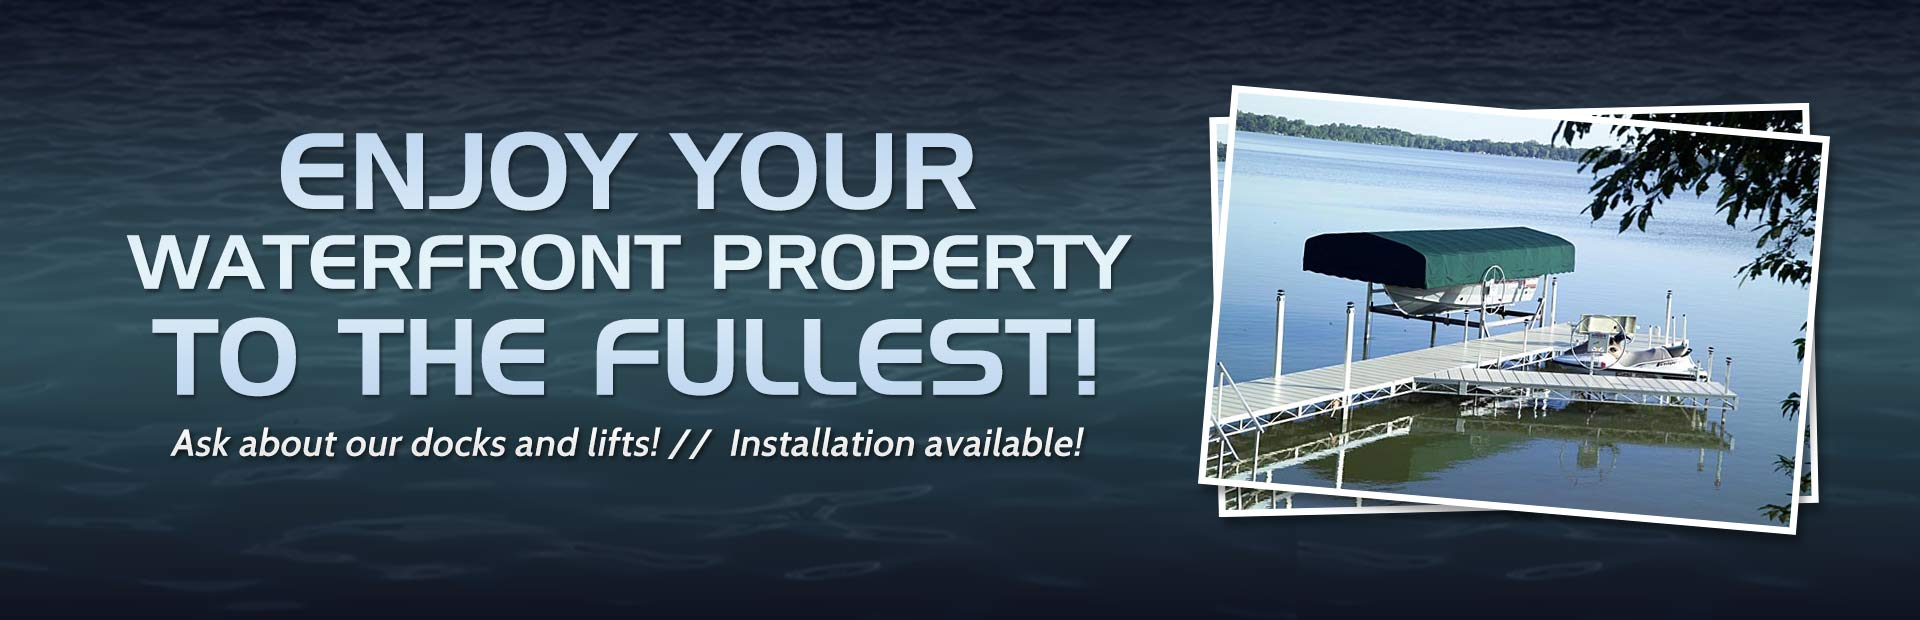 Enjoy your waterfront property to the fullest with a new dock or lift! Click here to contact us.